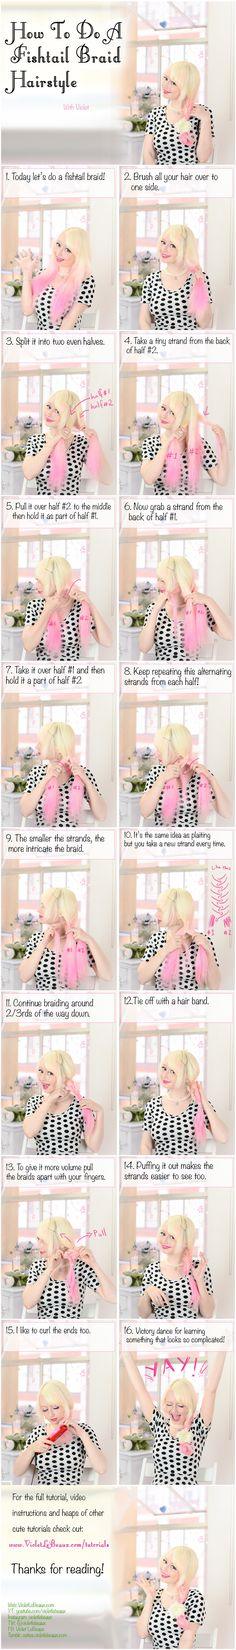 How To Do A Fishtail Braid - Hairstyle Tutorial by VioletLeBeaux.deviantart.com on @deviantART